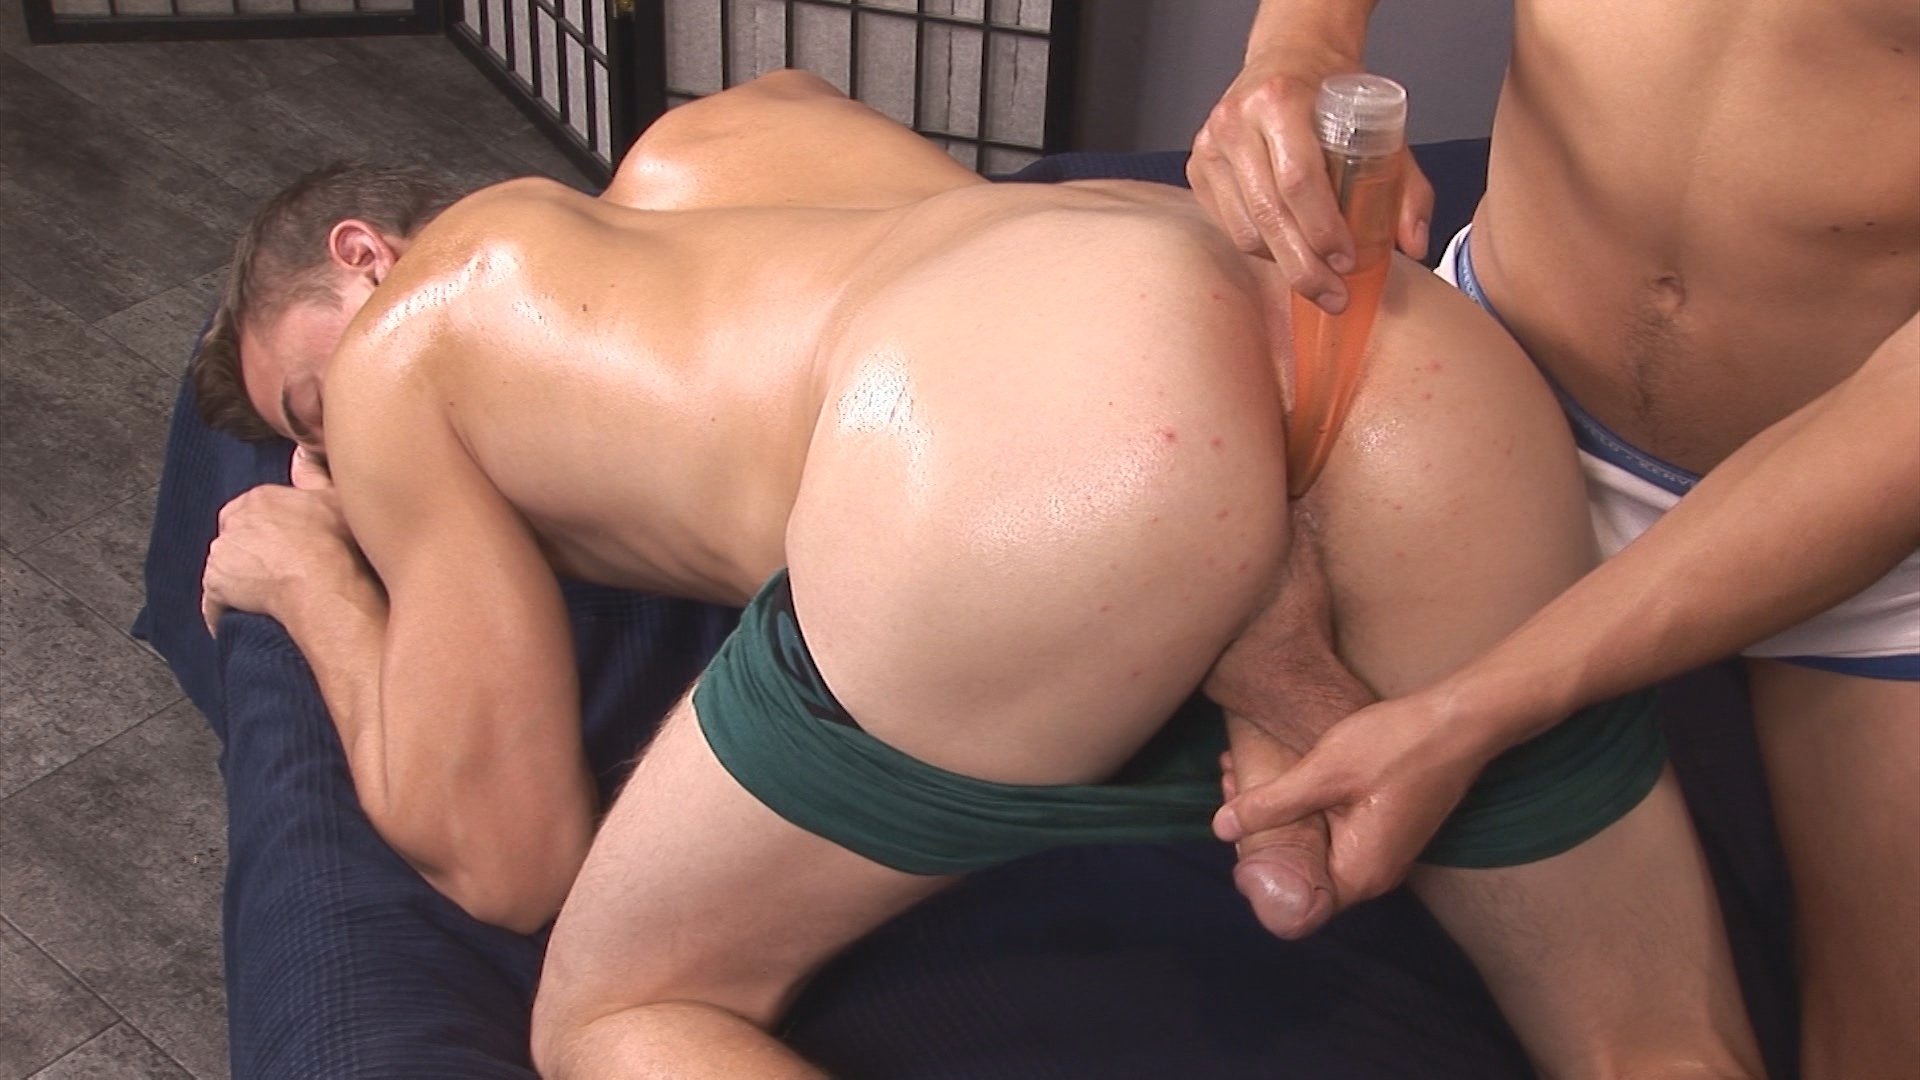 Gay cock riding on couch